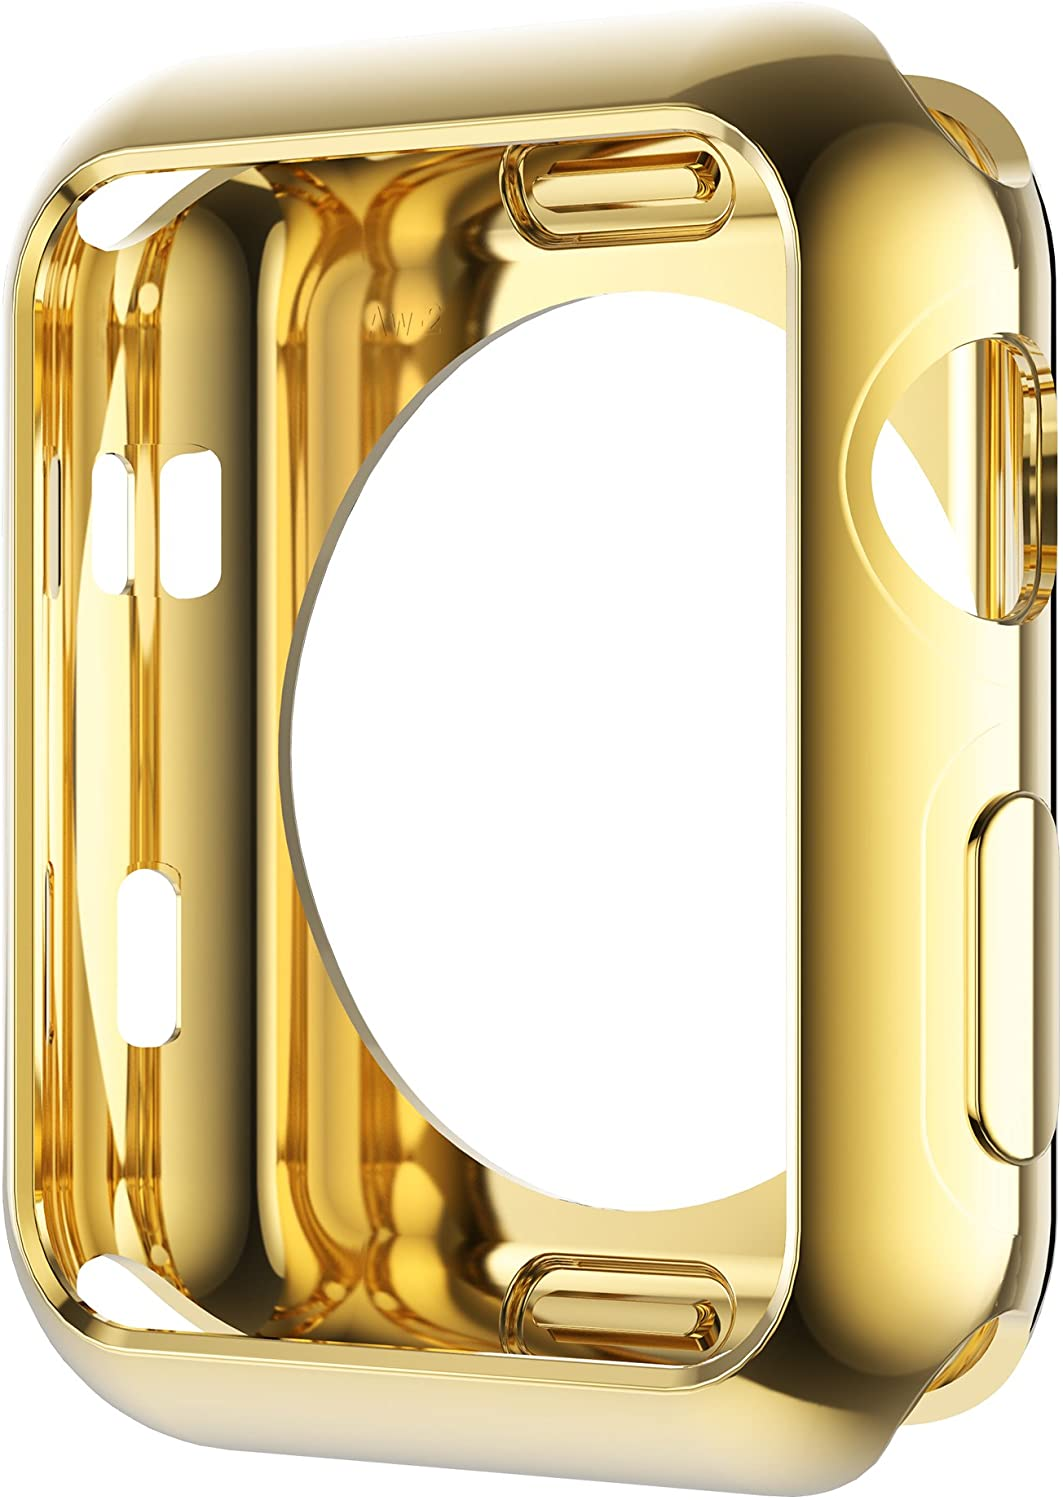 40mm series 5 gold apple watch case. iwatch cover